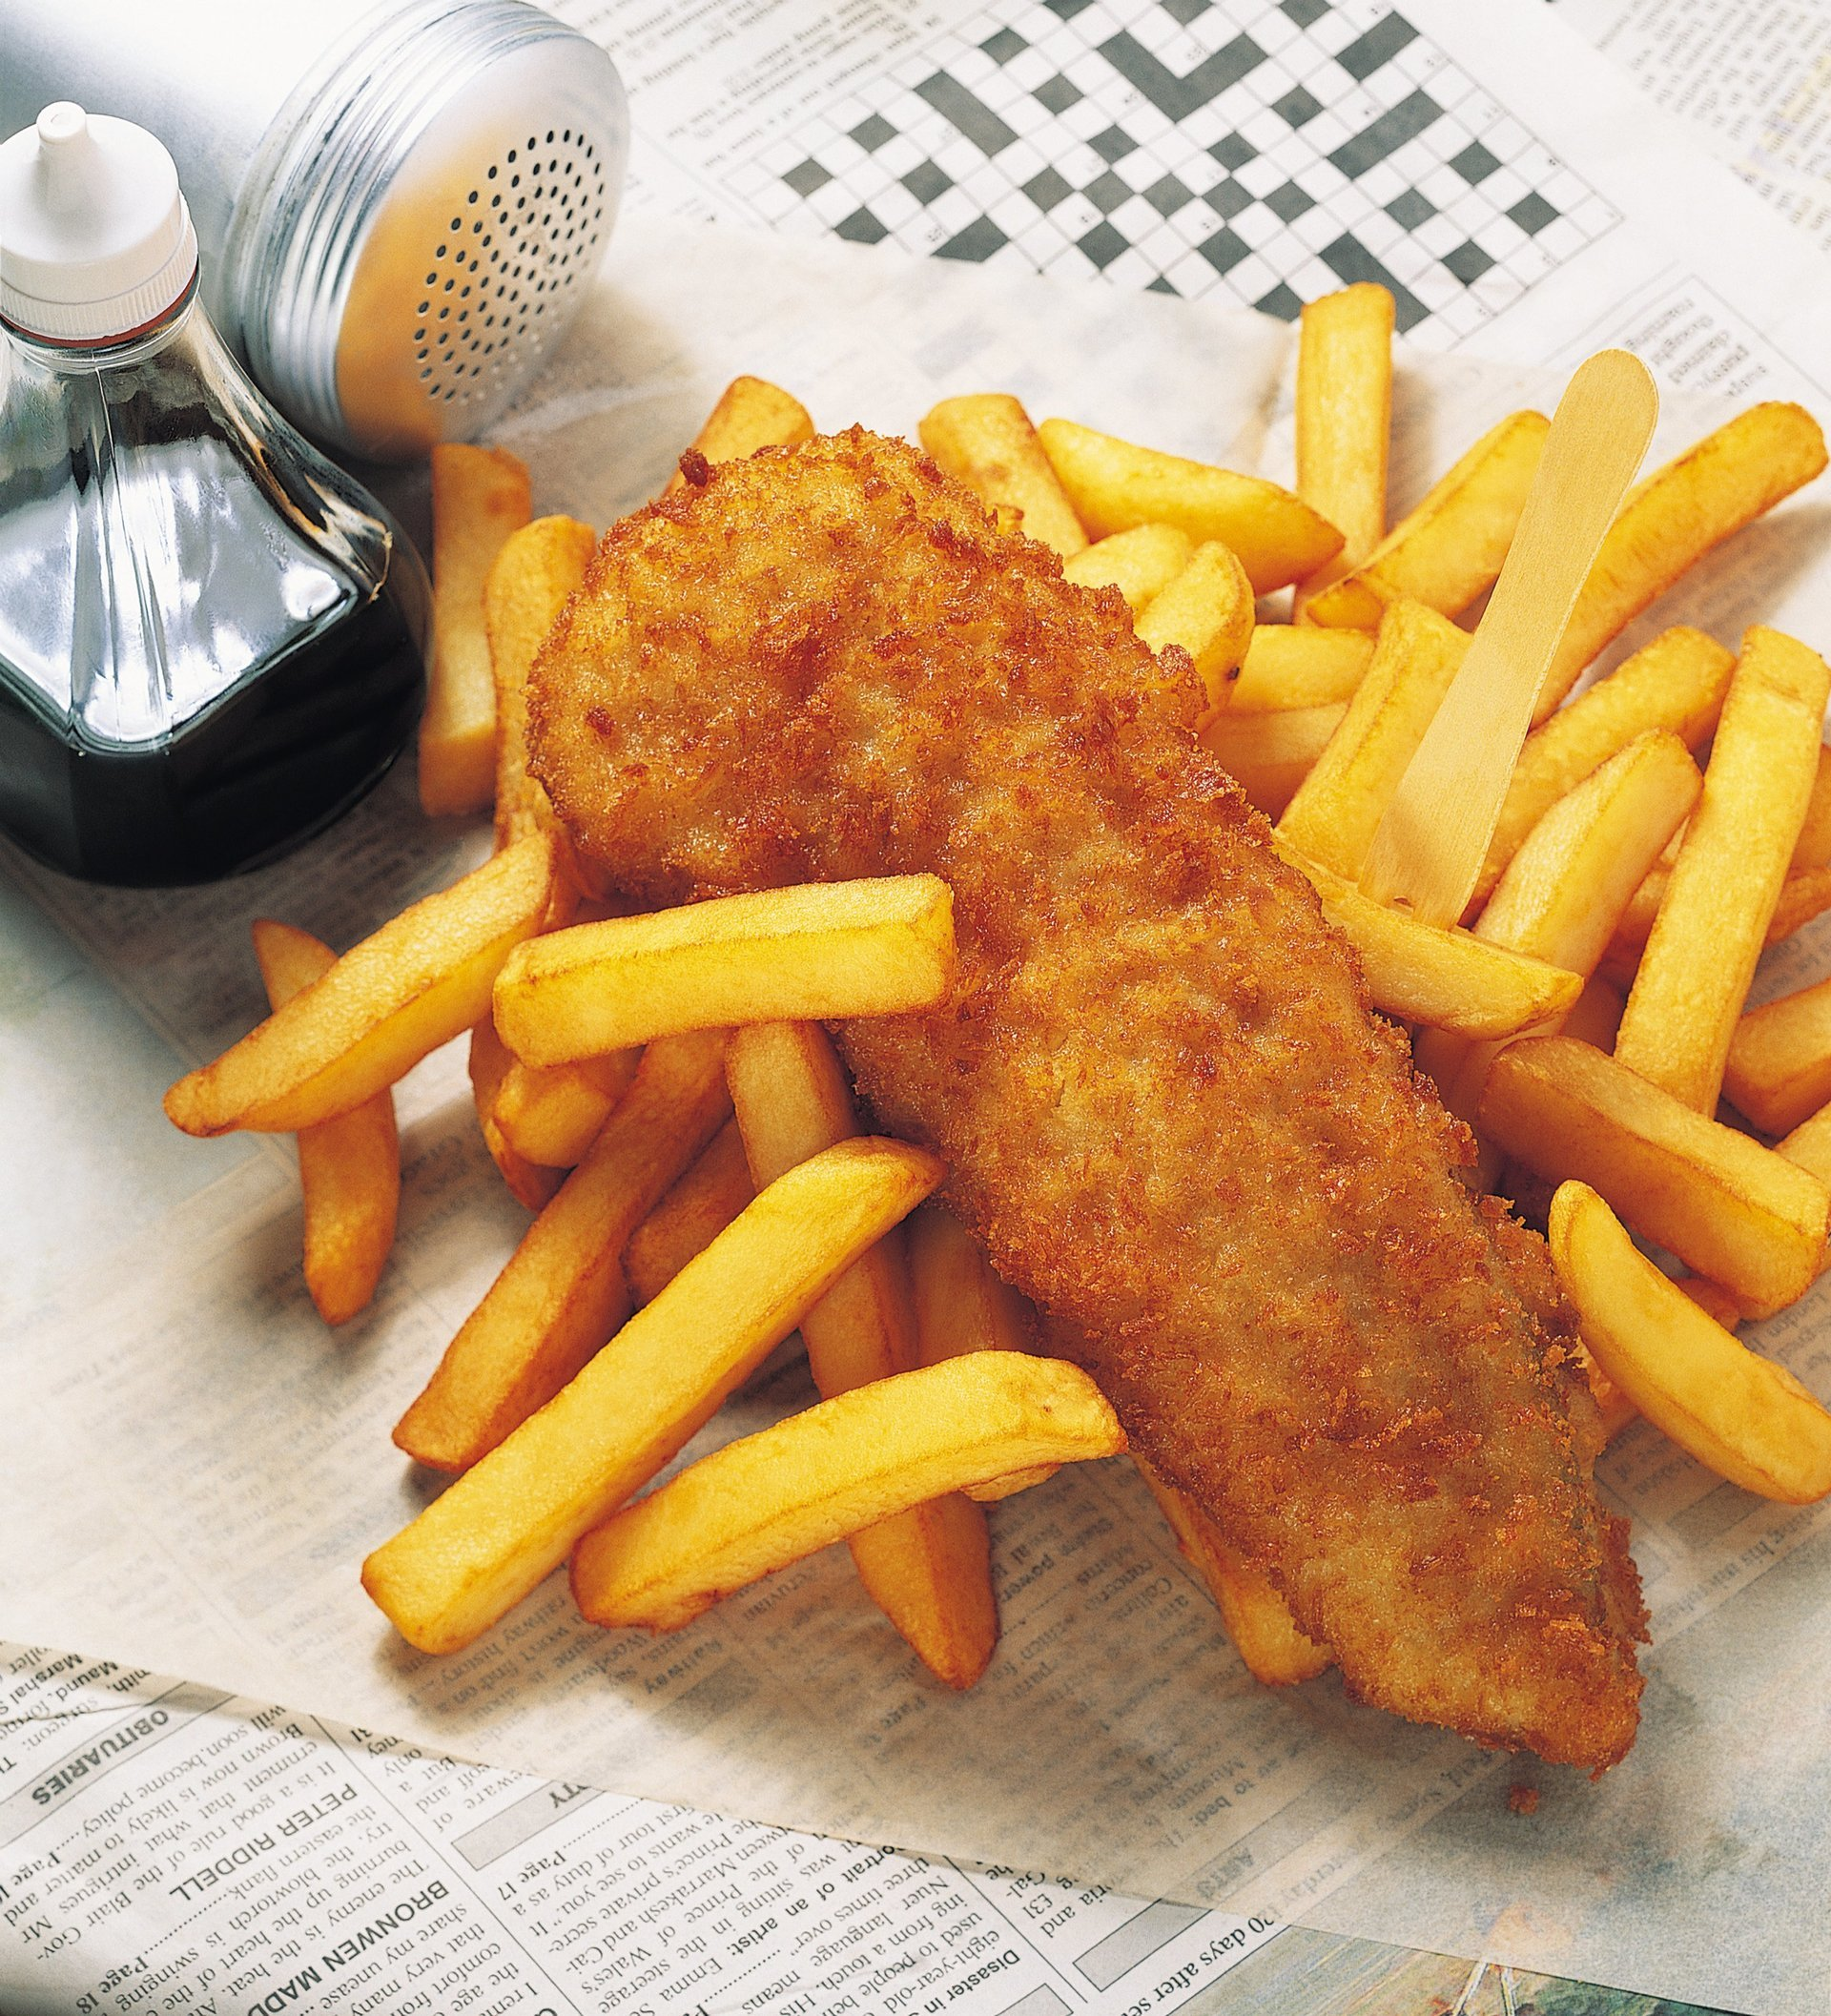 Nelson's Fish & Chips - Ipswich, Suffolk IP3 9QJ - 01473 726769 | ShowMeLocal.com